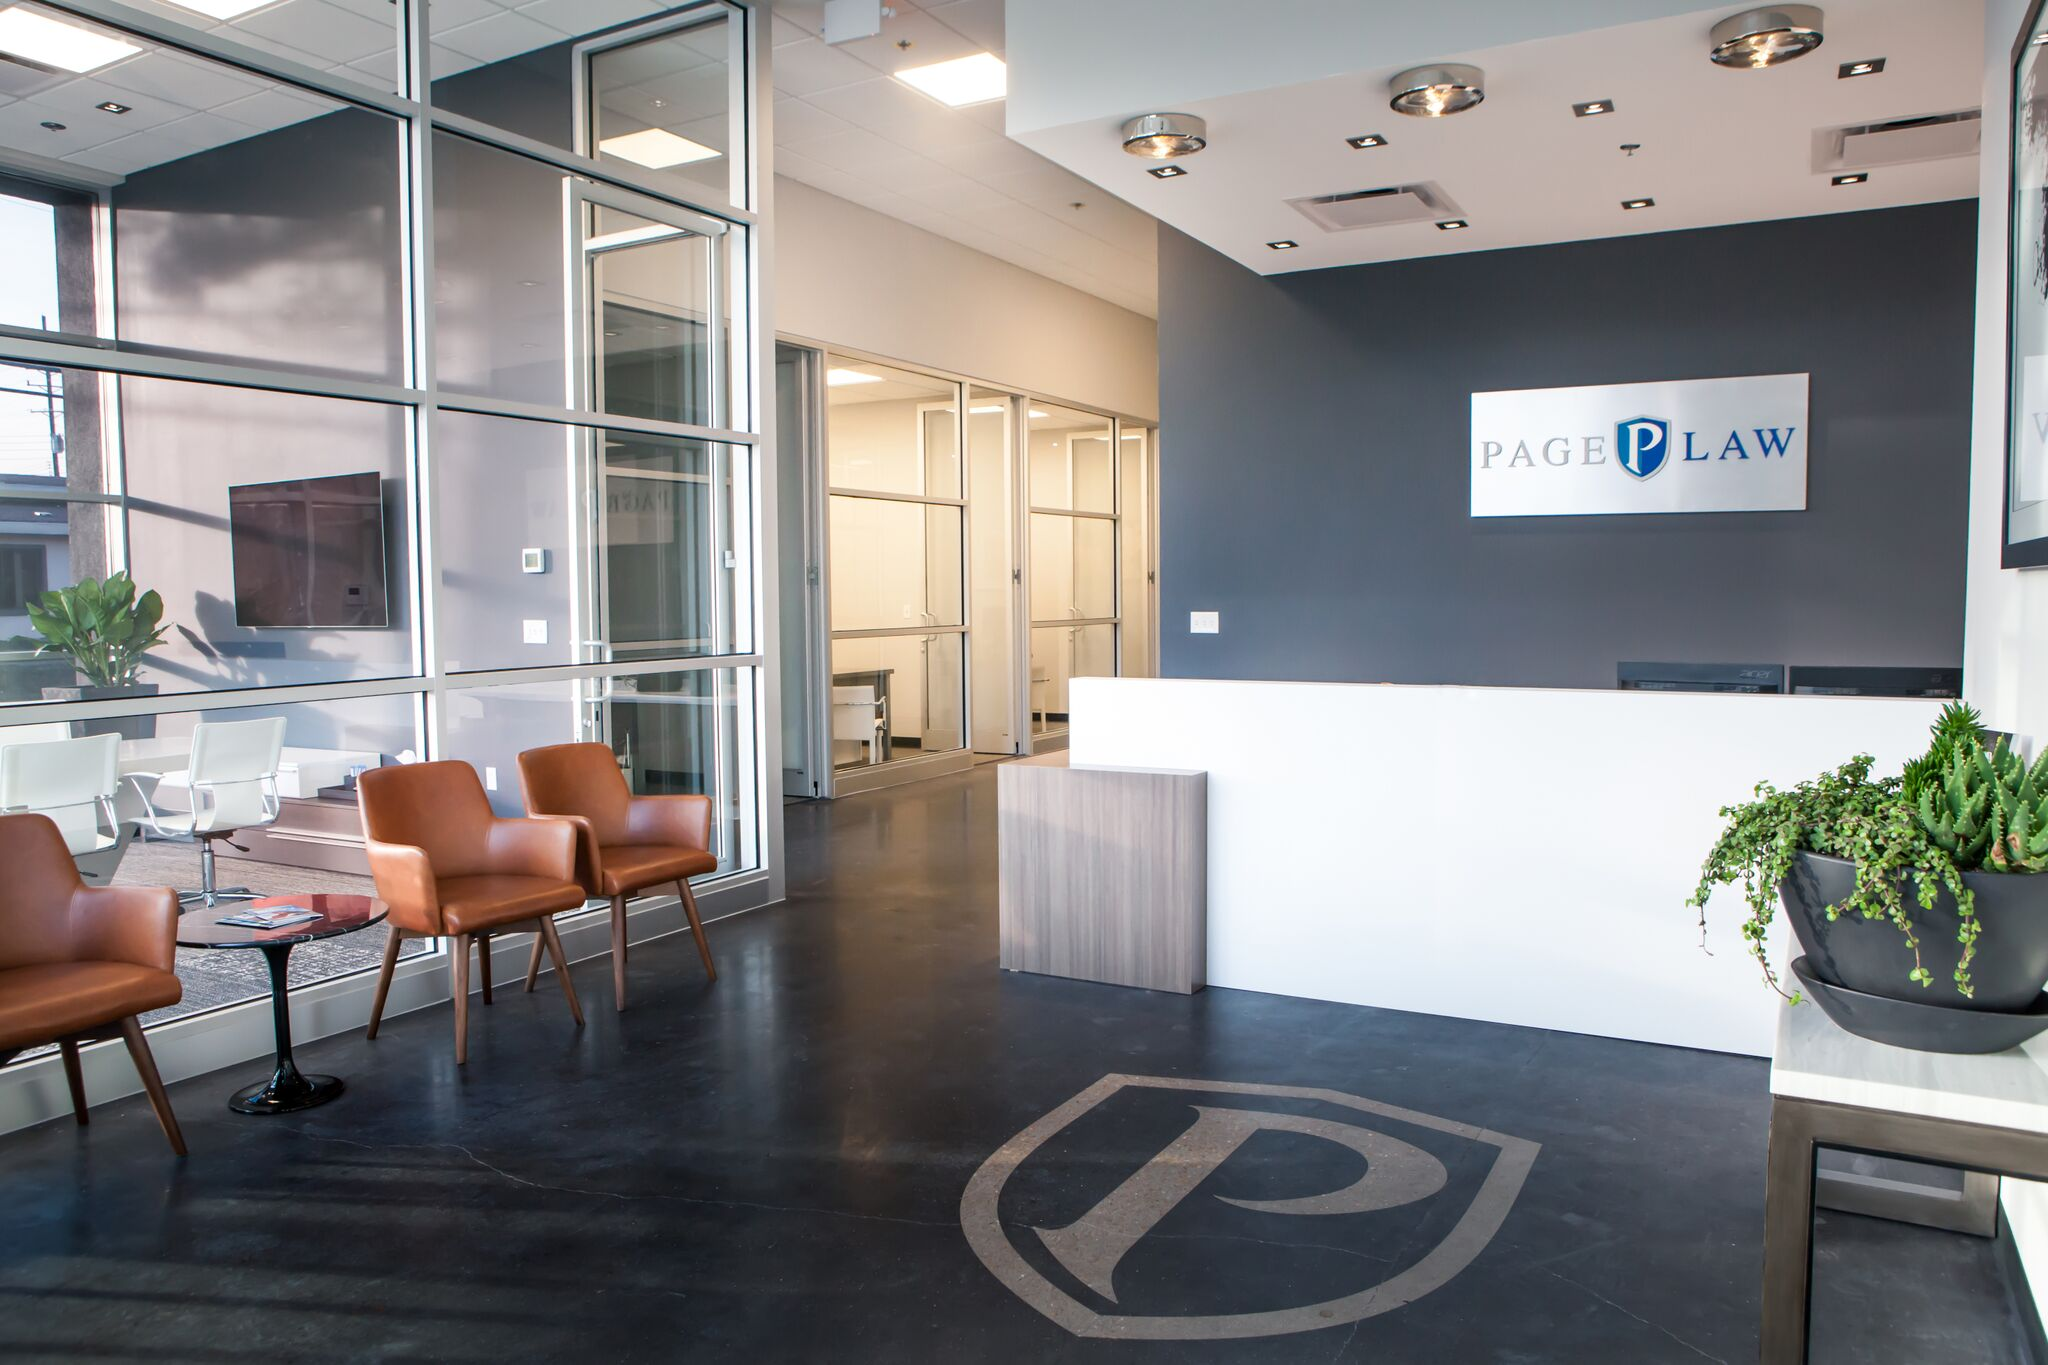 Lobby showing offices.jpg